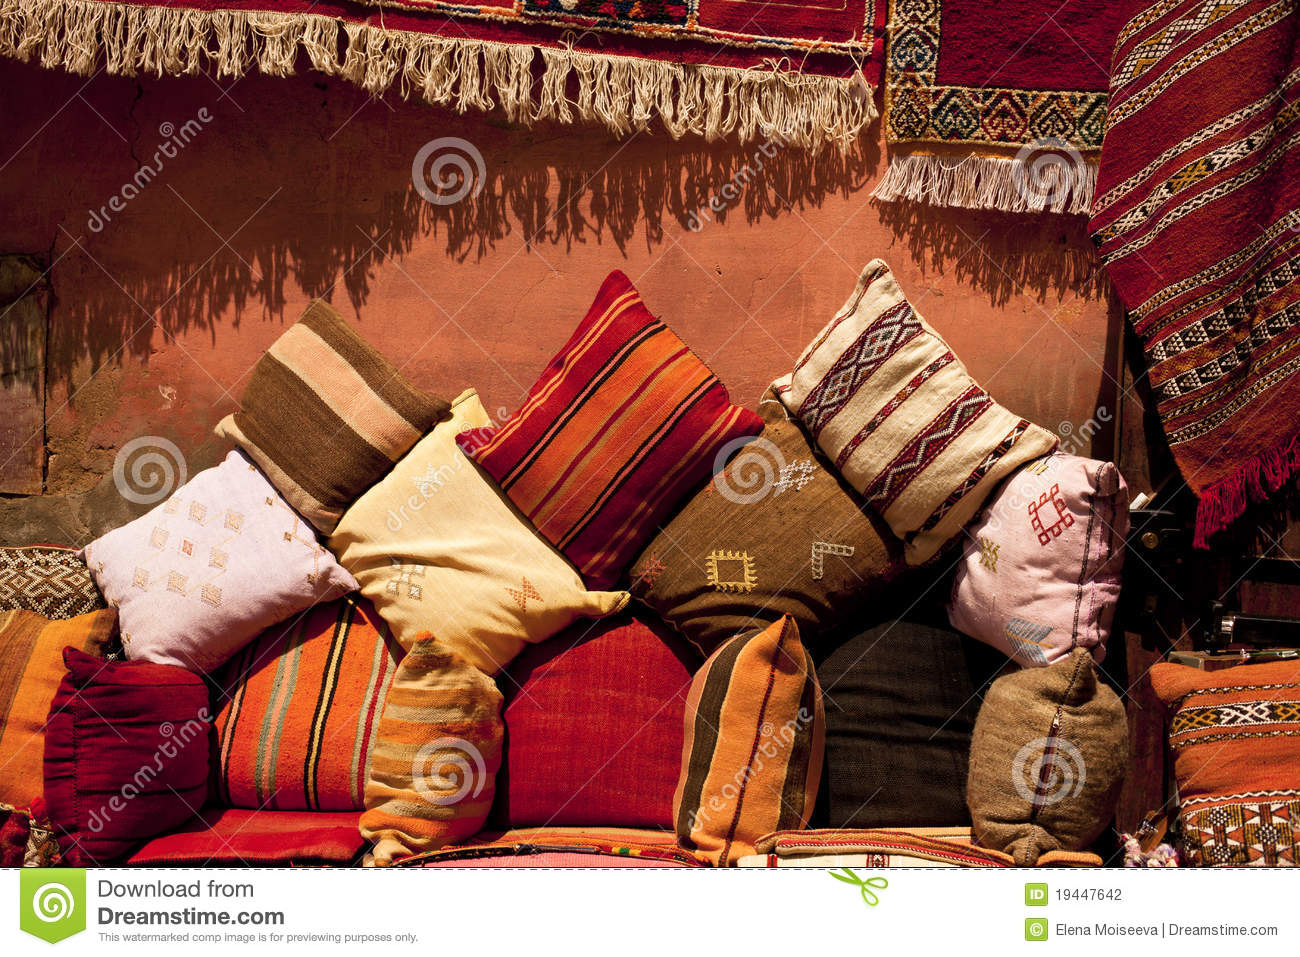 marokkanische kissen in einer stra e kaufen im medina souk stockfotografie bild 19447642. Black Bedroom Furniture Sets. Home Design Ideas